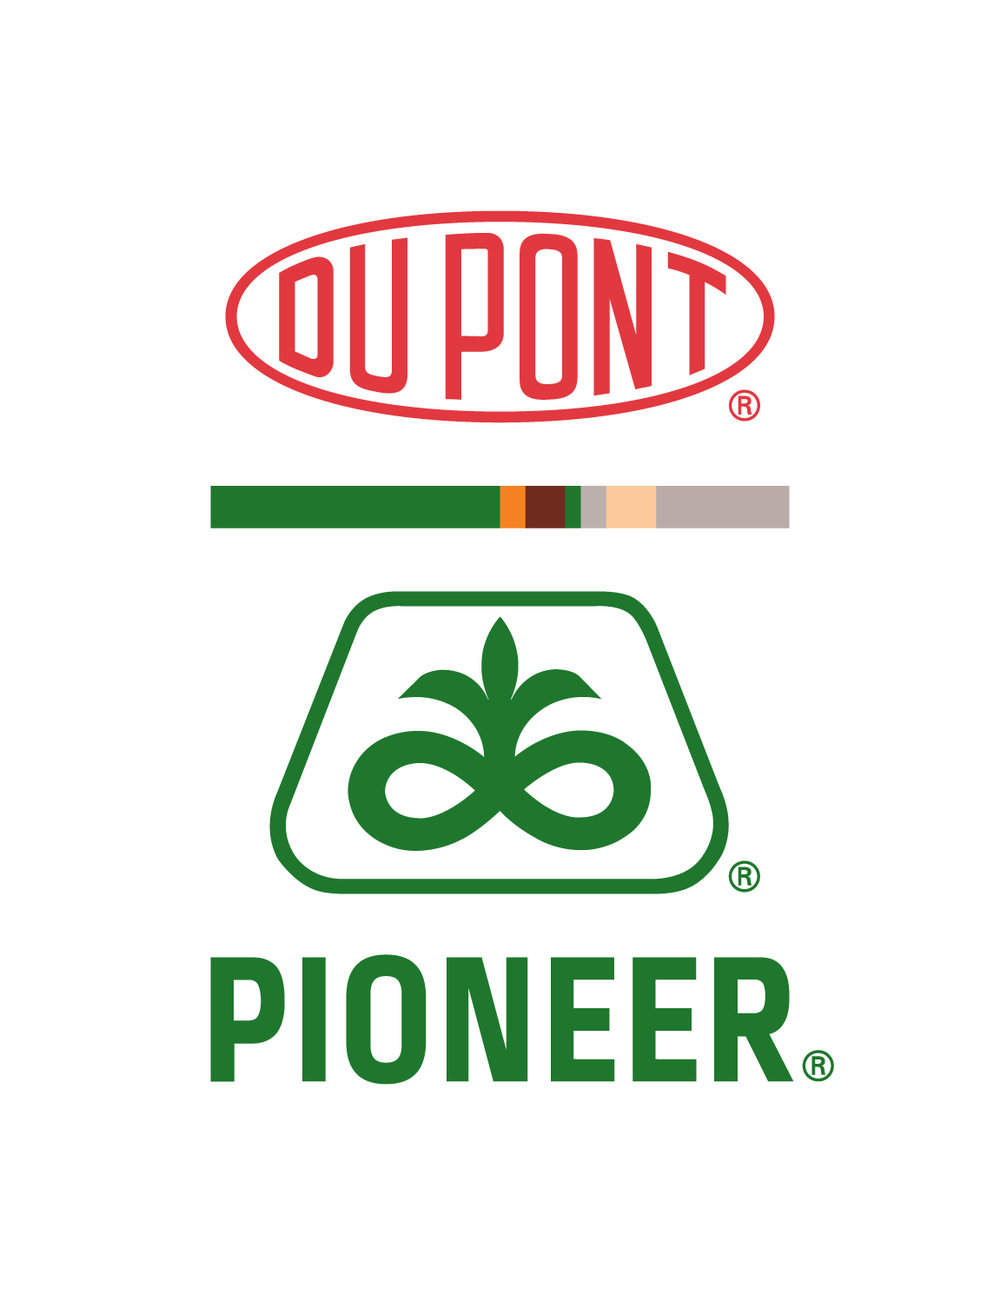 PIONEER_Vertical_Full_Color.jpg